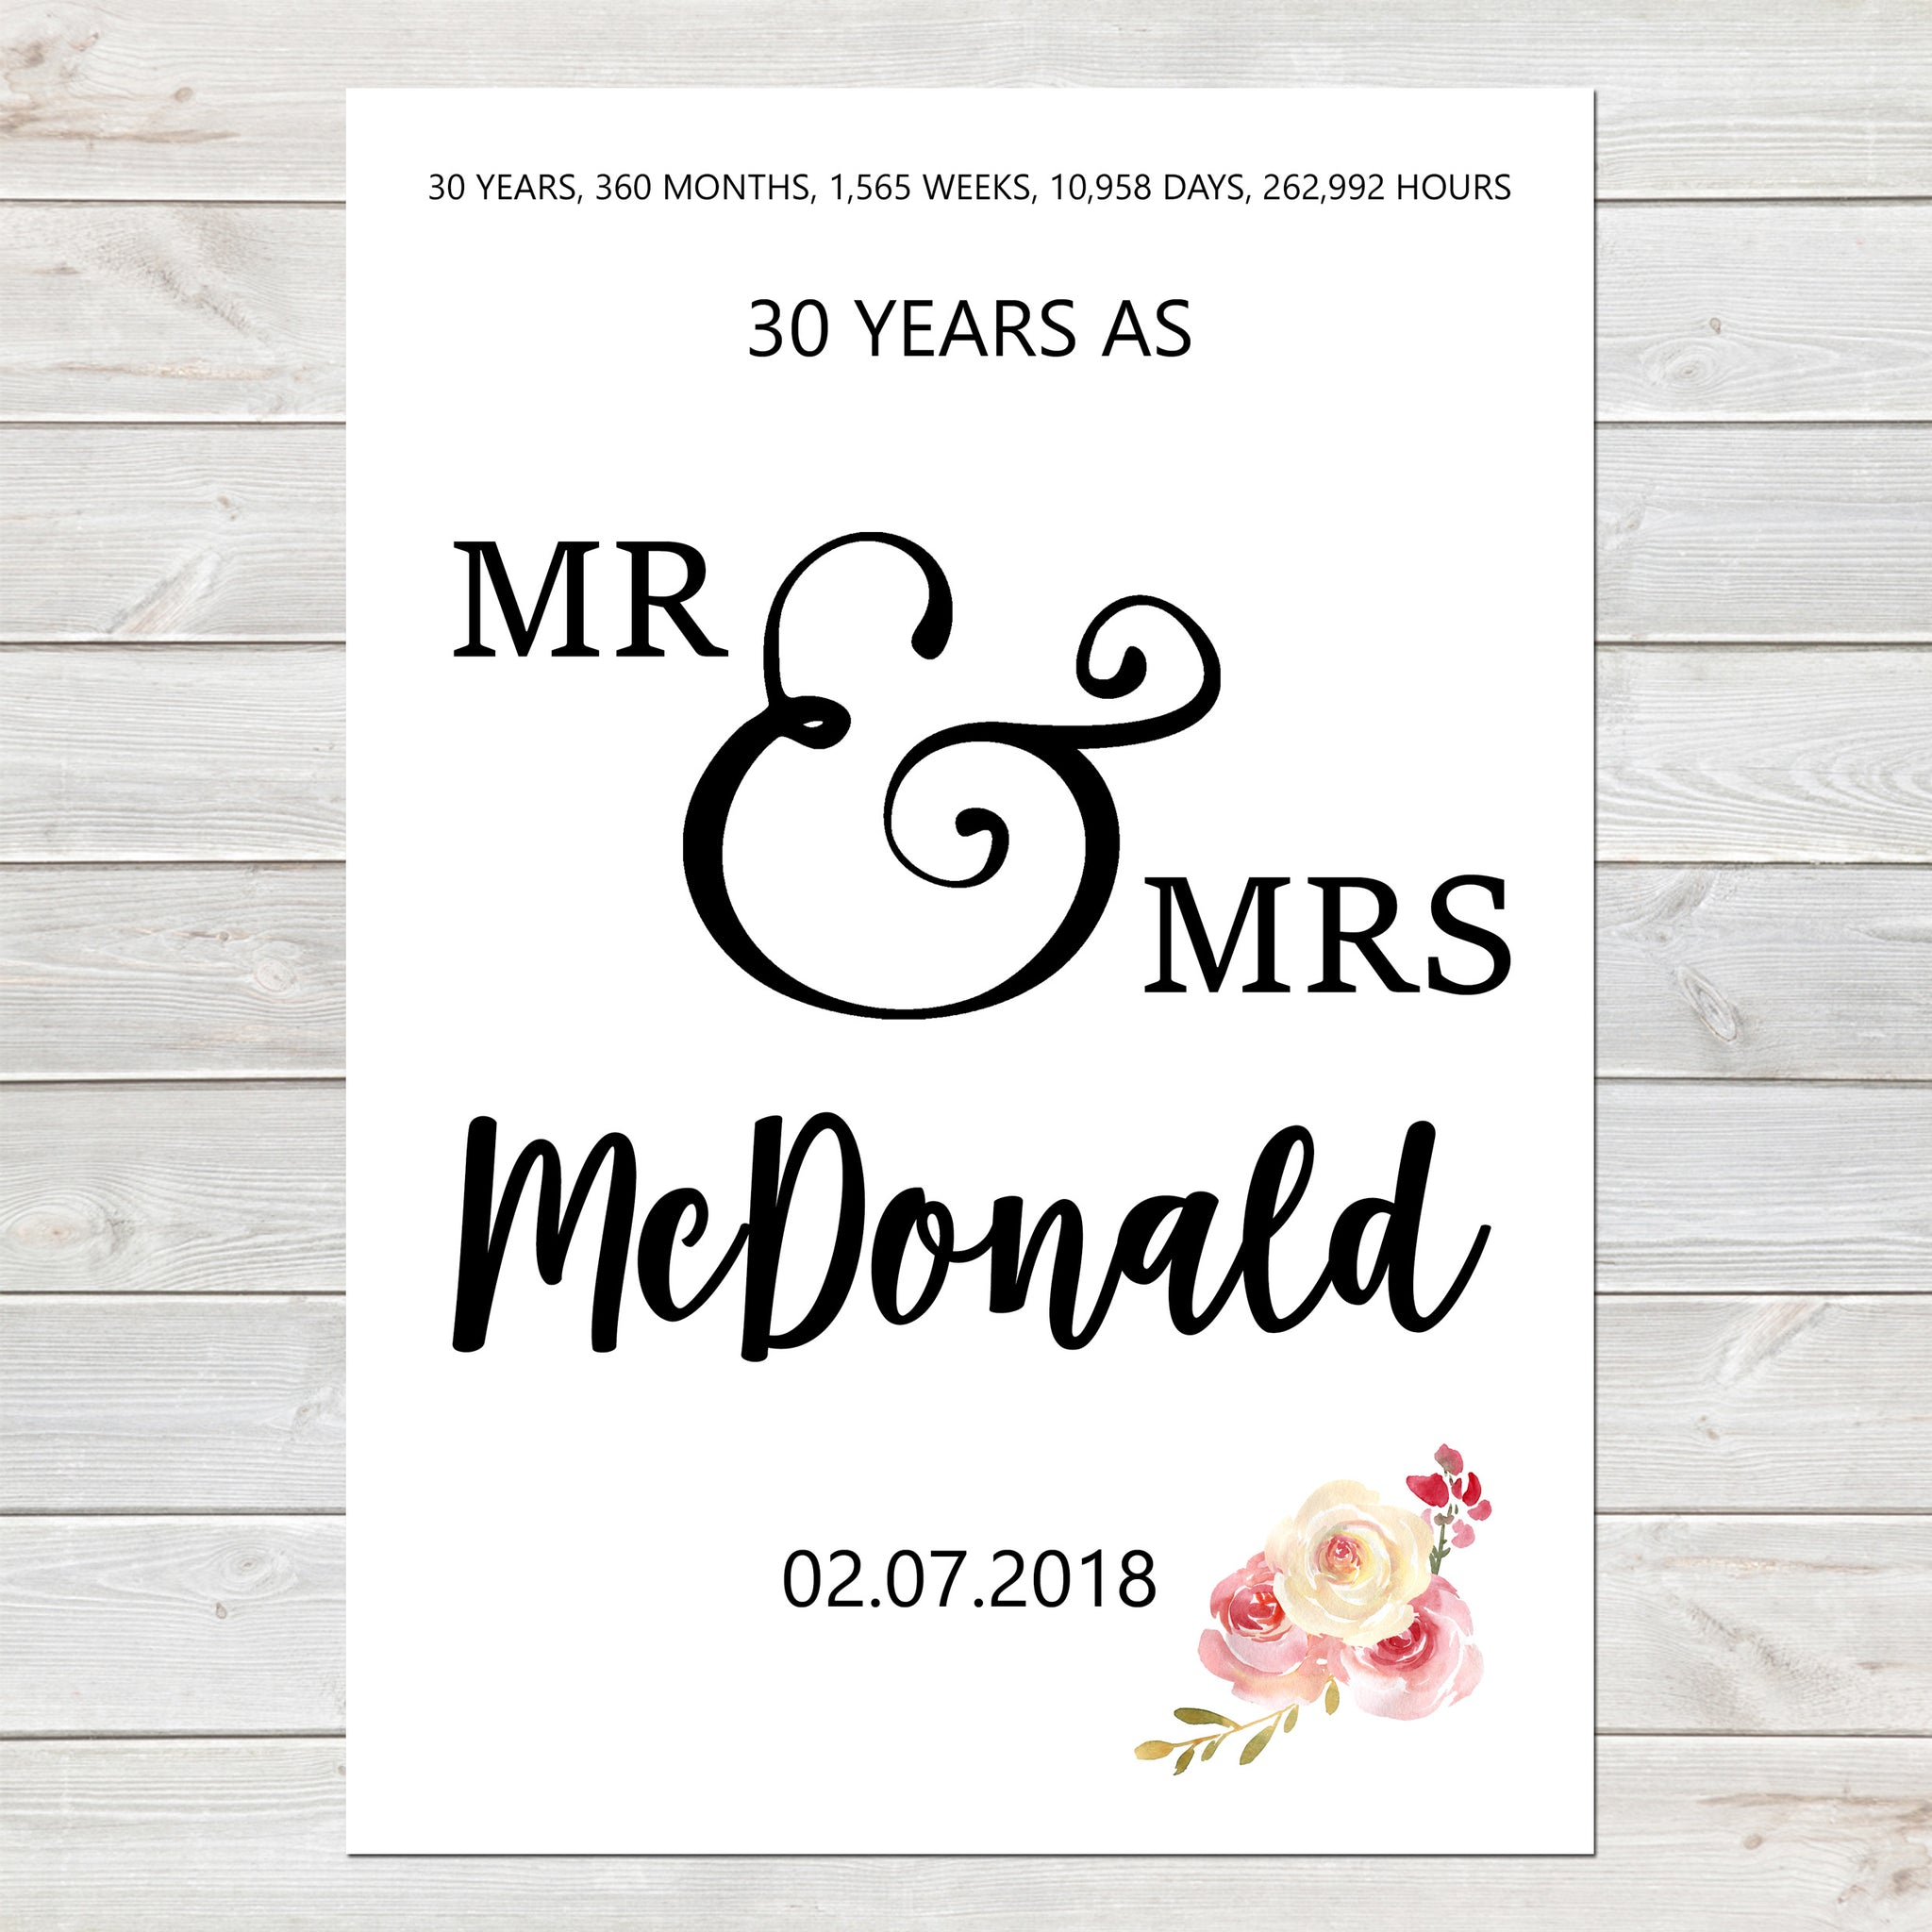 Anniversary Days Months Years Print Personalised Wall Art Gift A4 or A3